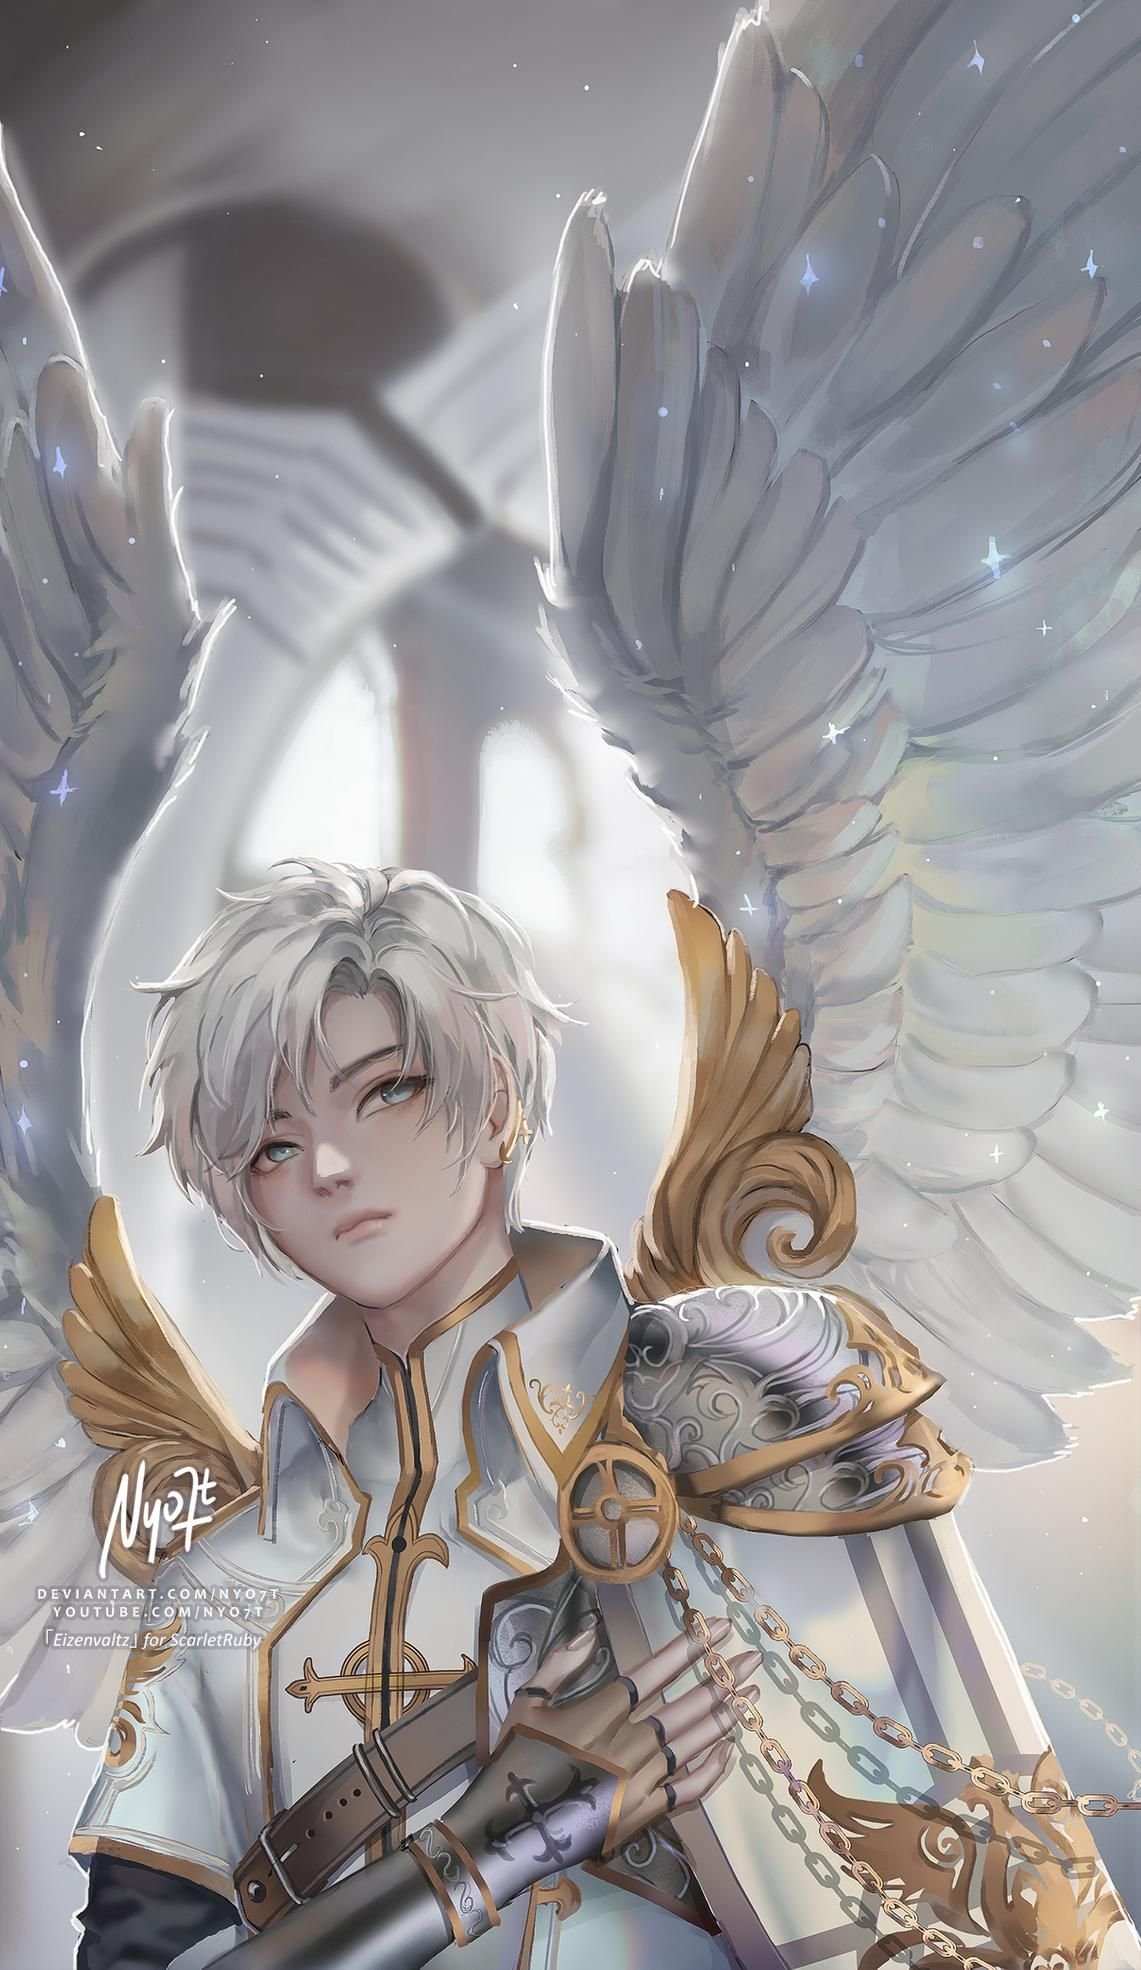 Pin By Ray On Illustration 2 Anime Boy Art Character Art